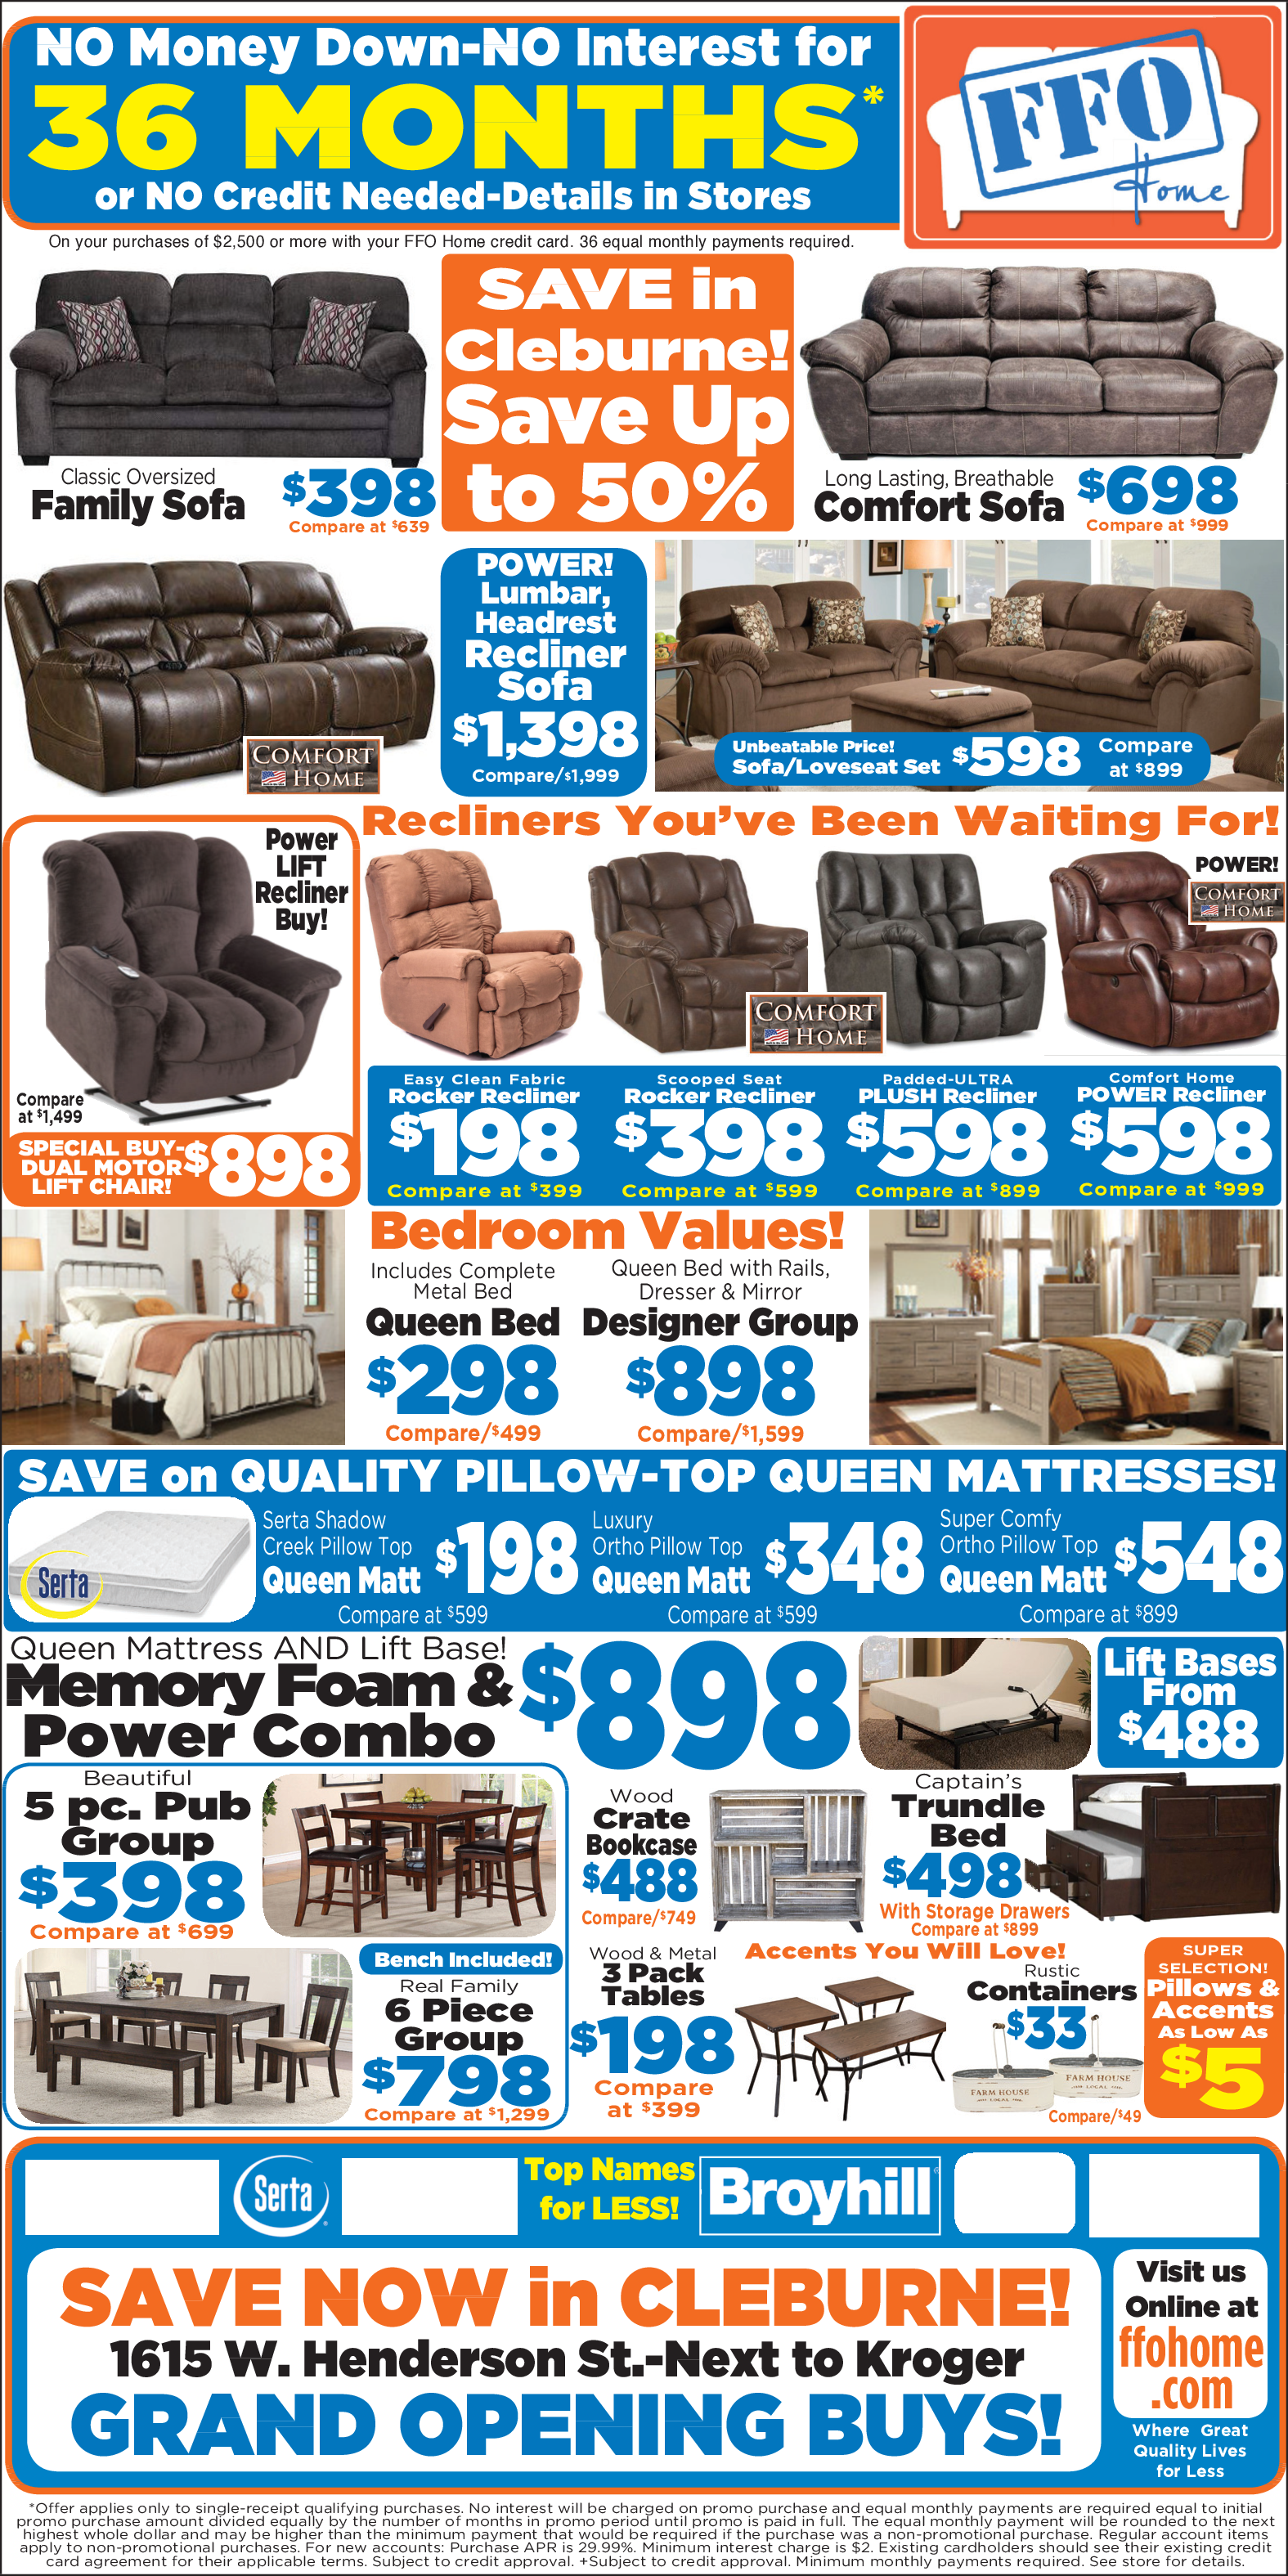 Save Money On Furniture In Cleburne Tx Furniture Ffo Home Furniture